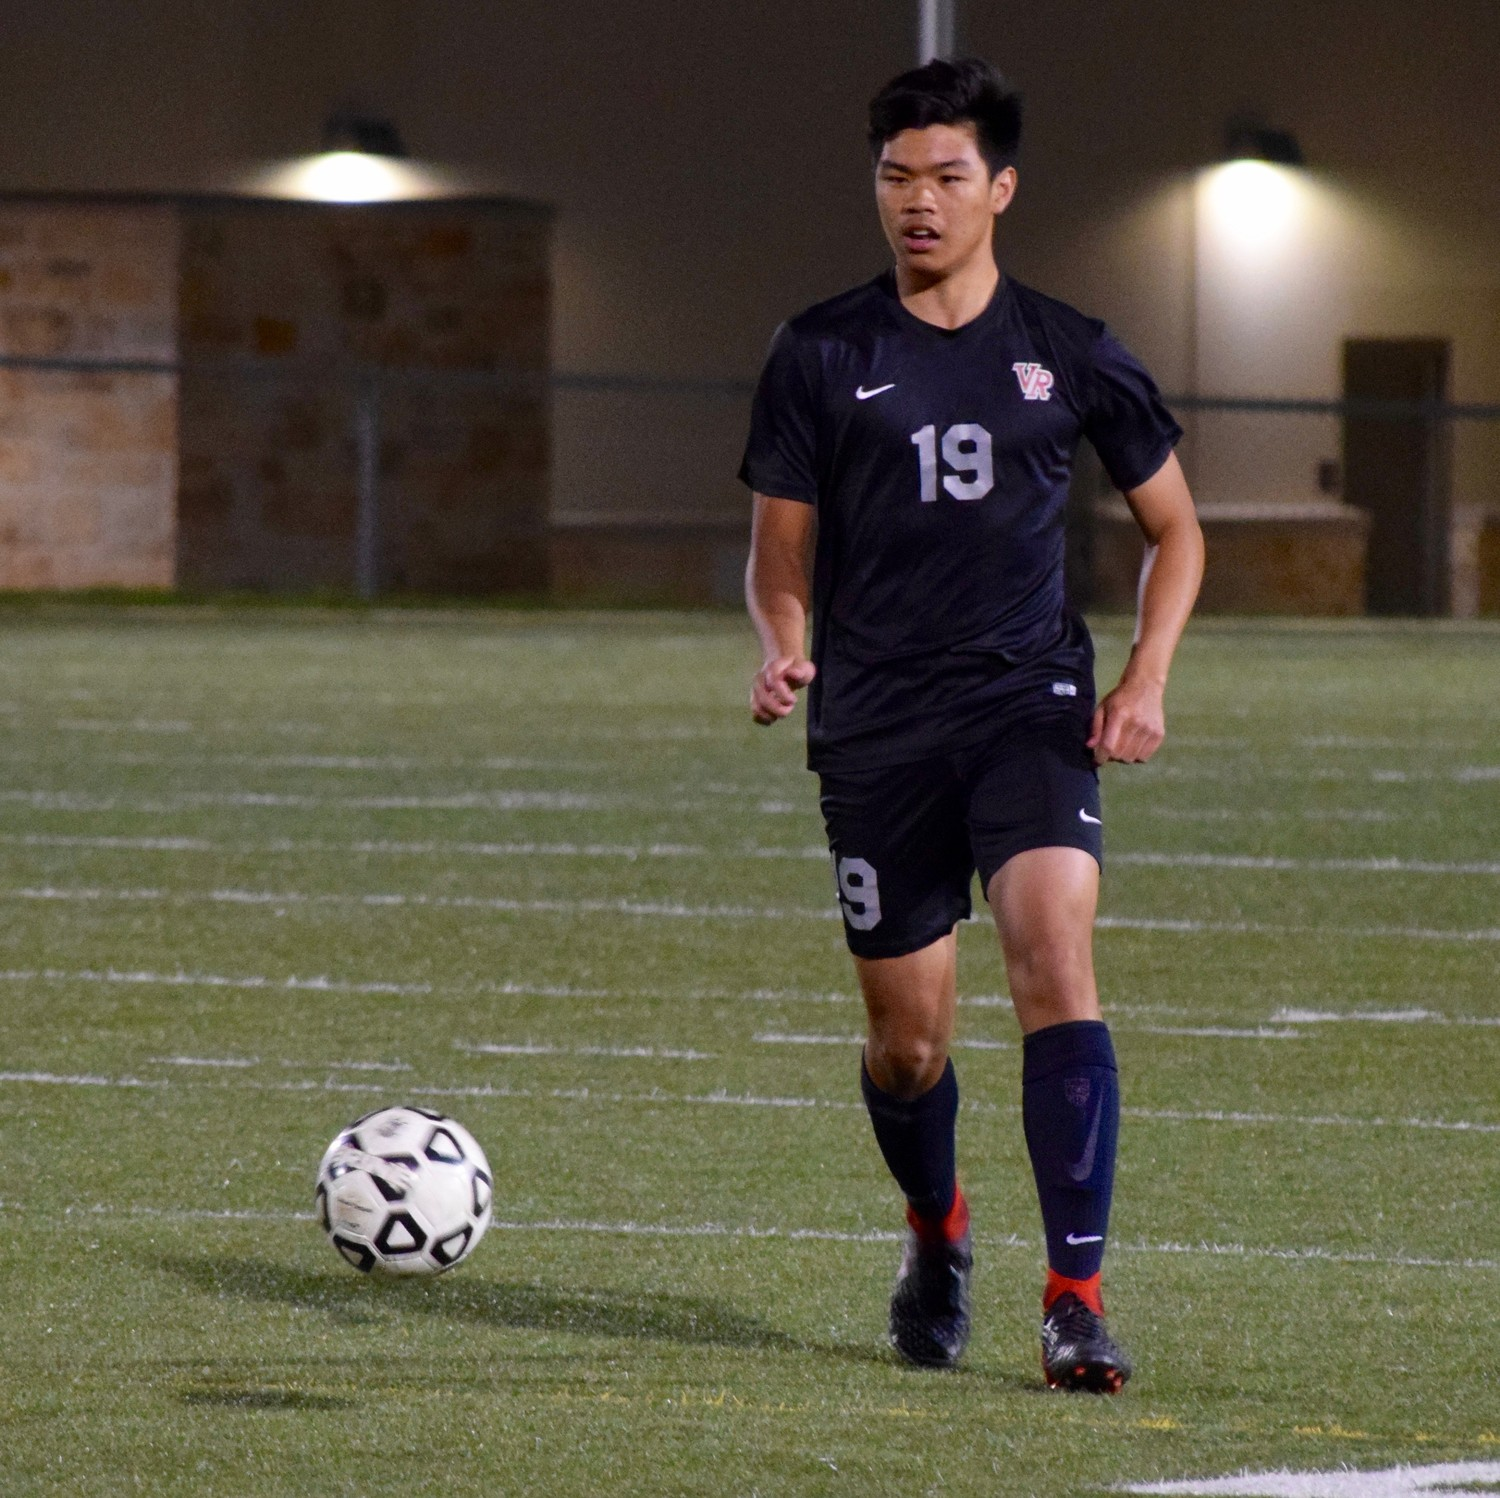 Khoa Dang and Vista Ridge lost to San Antonio Johnson Thursday night in the first round of the playoffs at Dripping Springs High School.